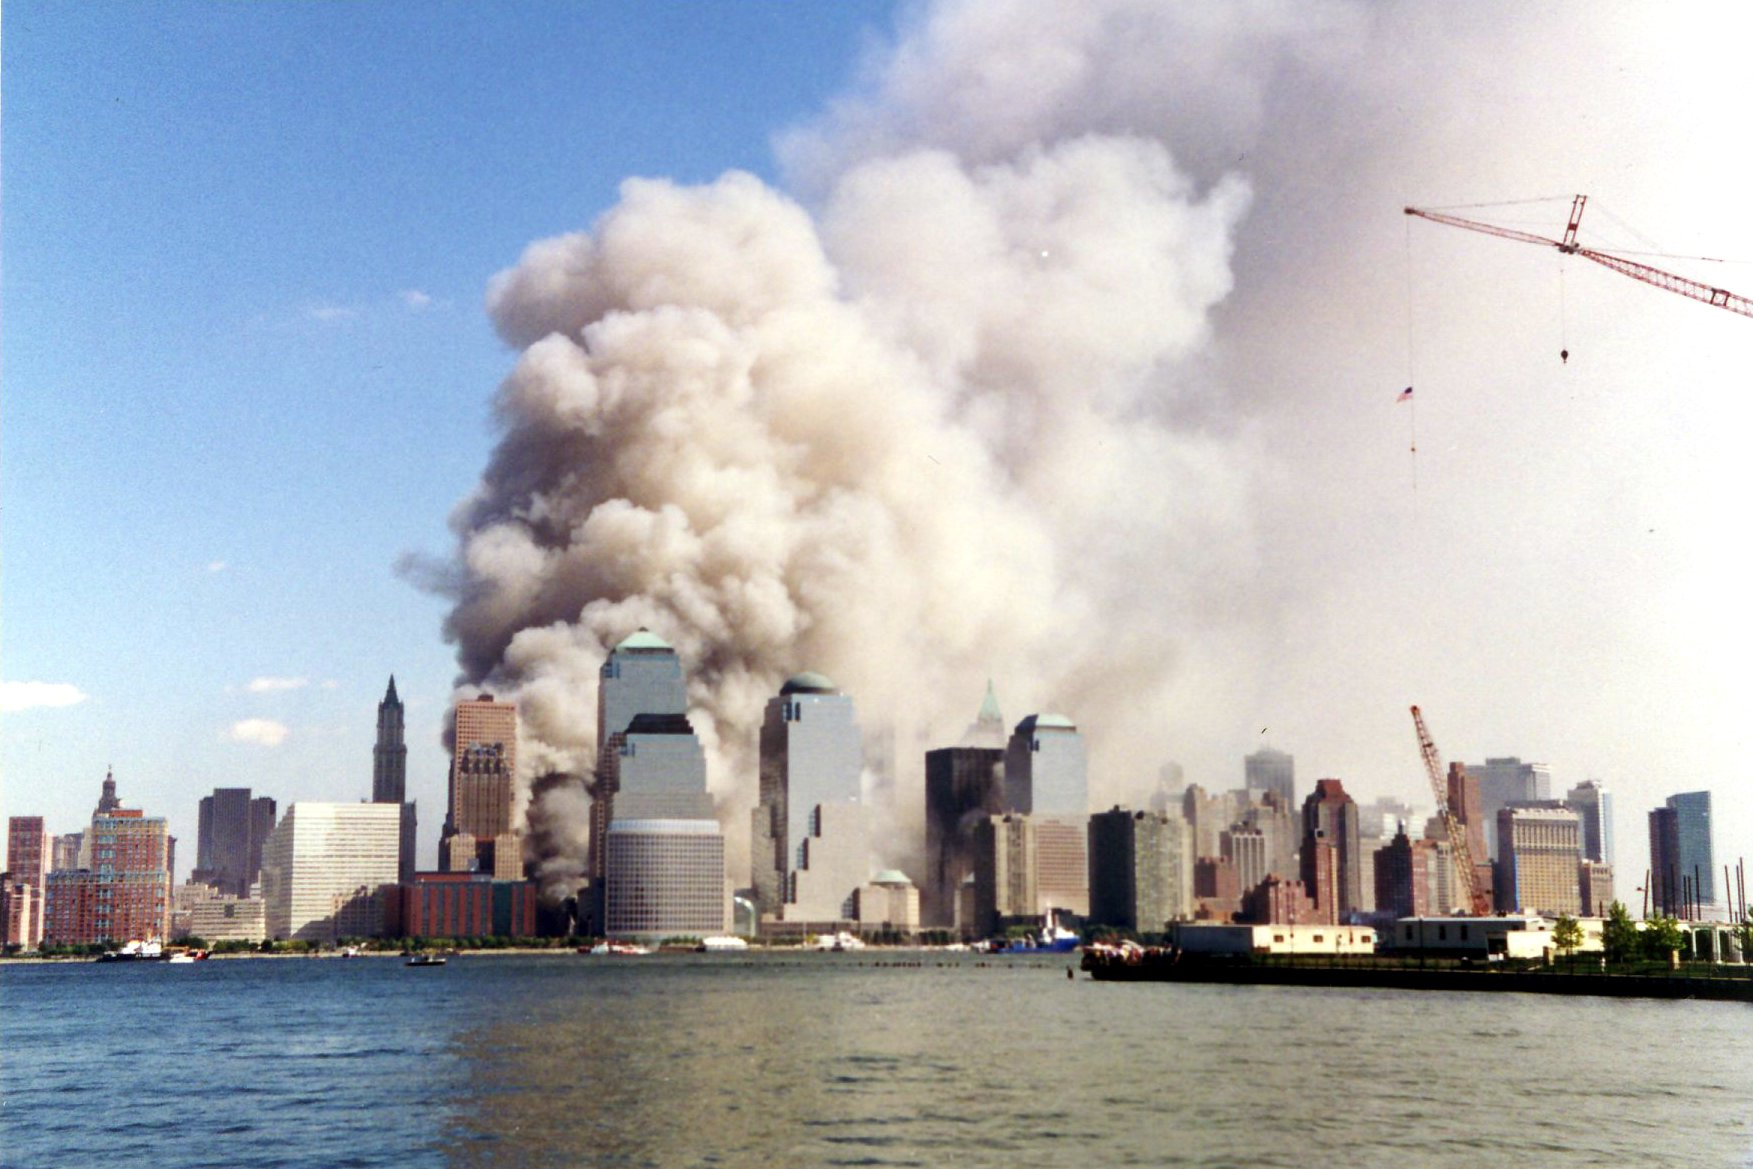 an analysis of the attacks on the united states during the eleventh september 2001